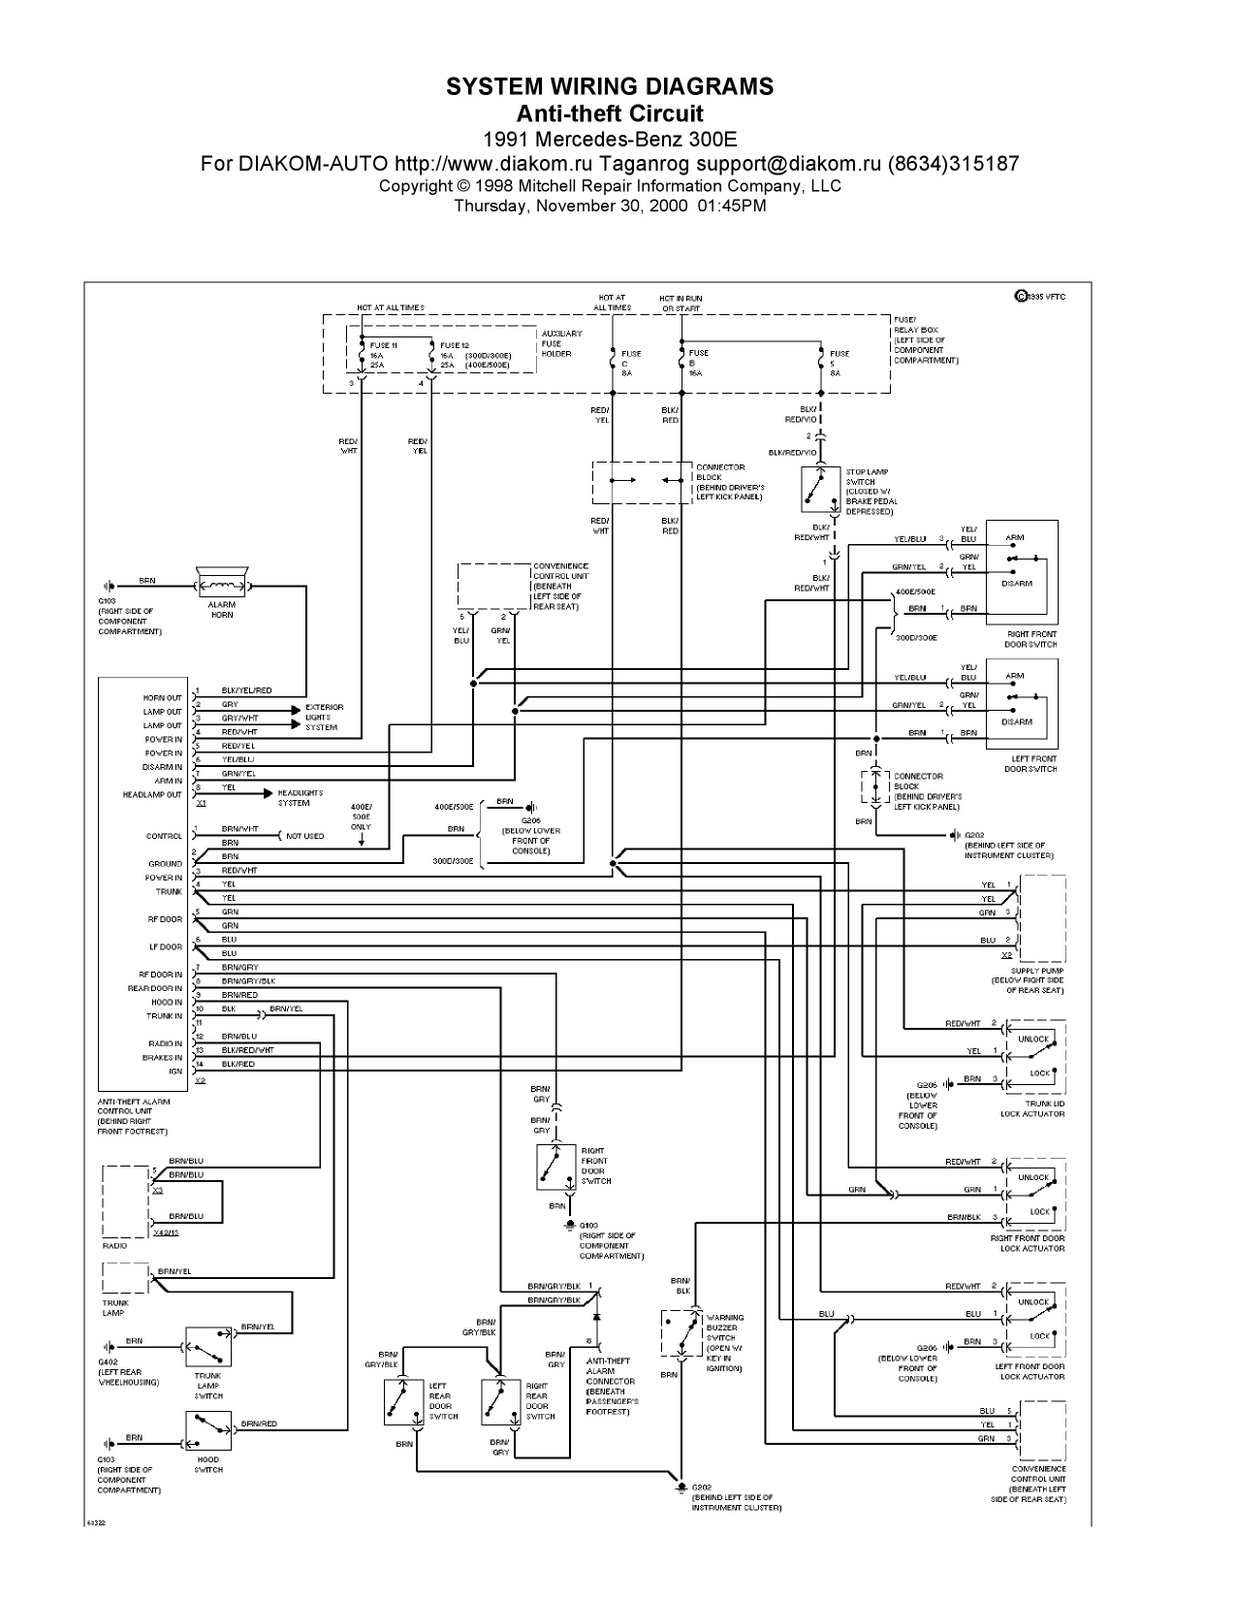 Mercedes E350 Fuse Box Diagram On Fuel Pump Relay Location Smart Car